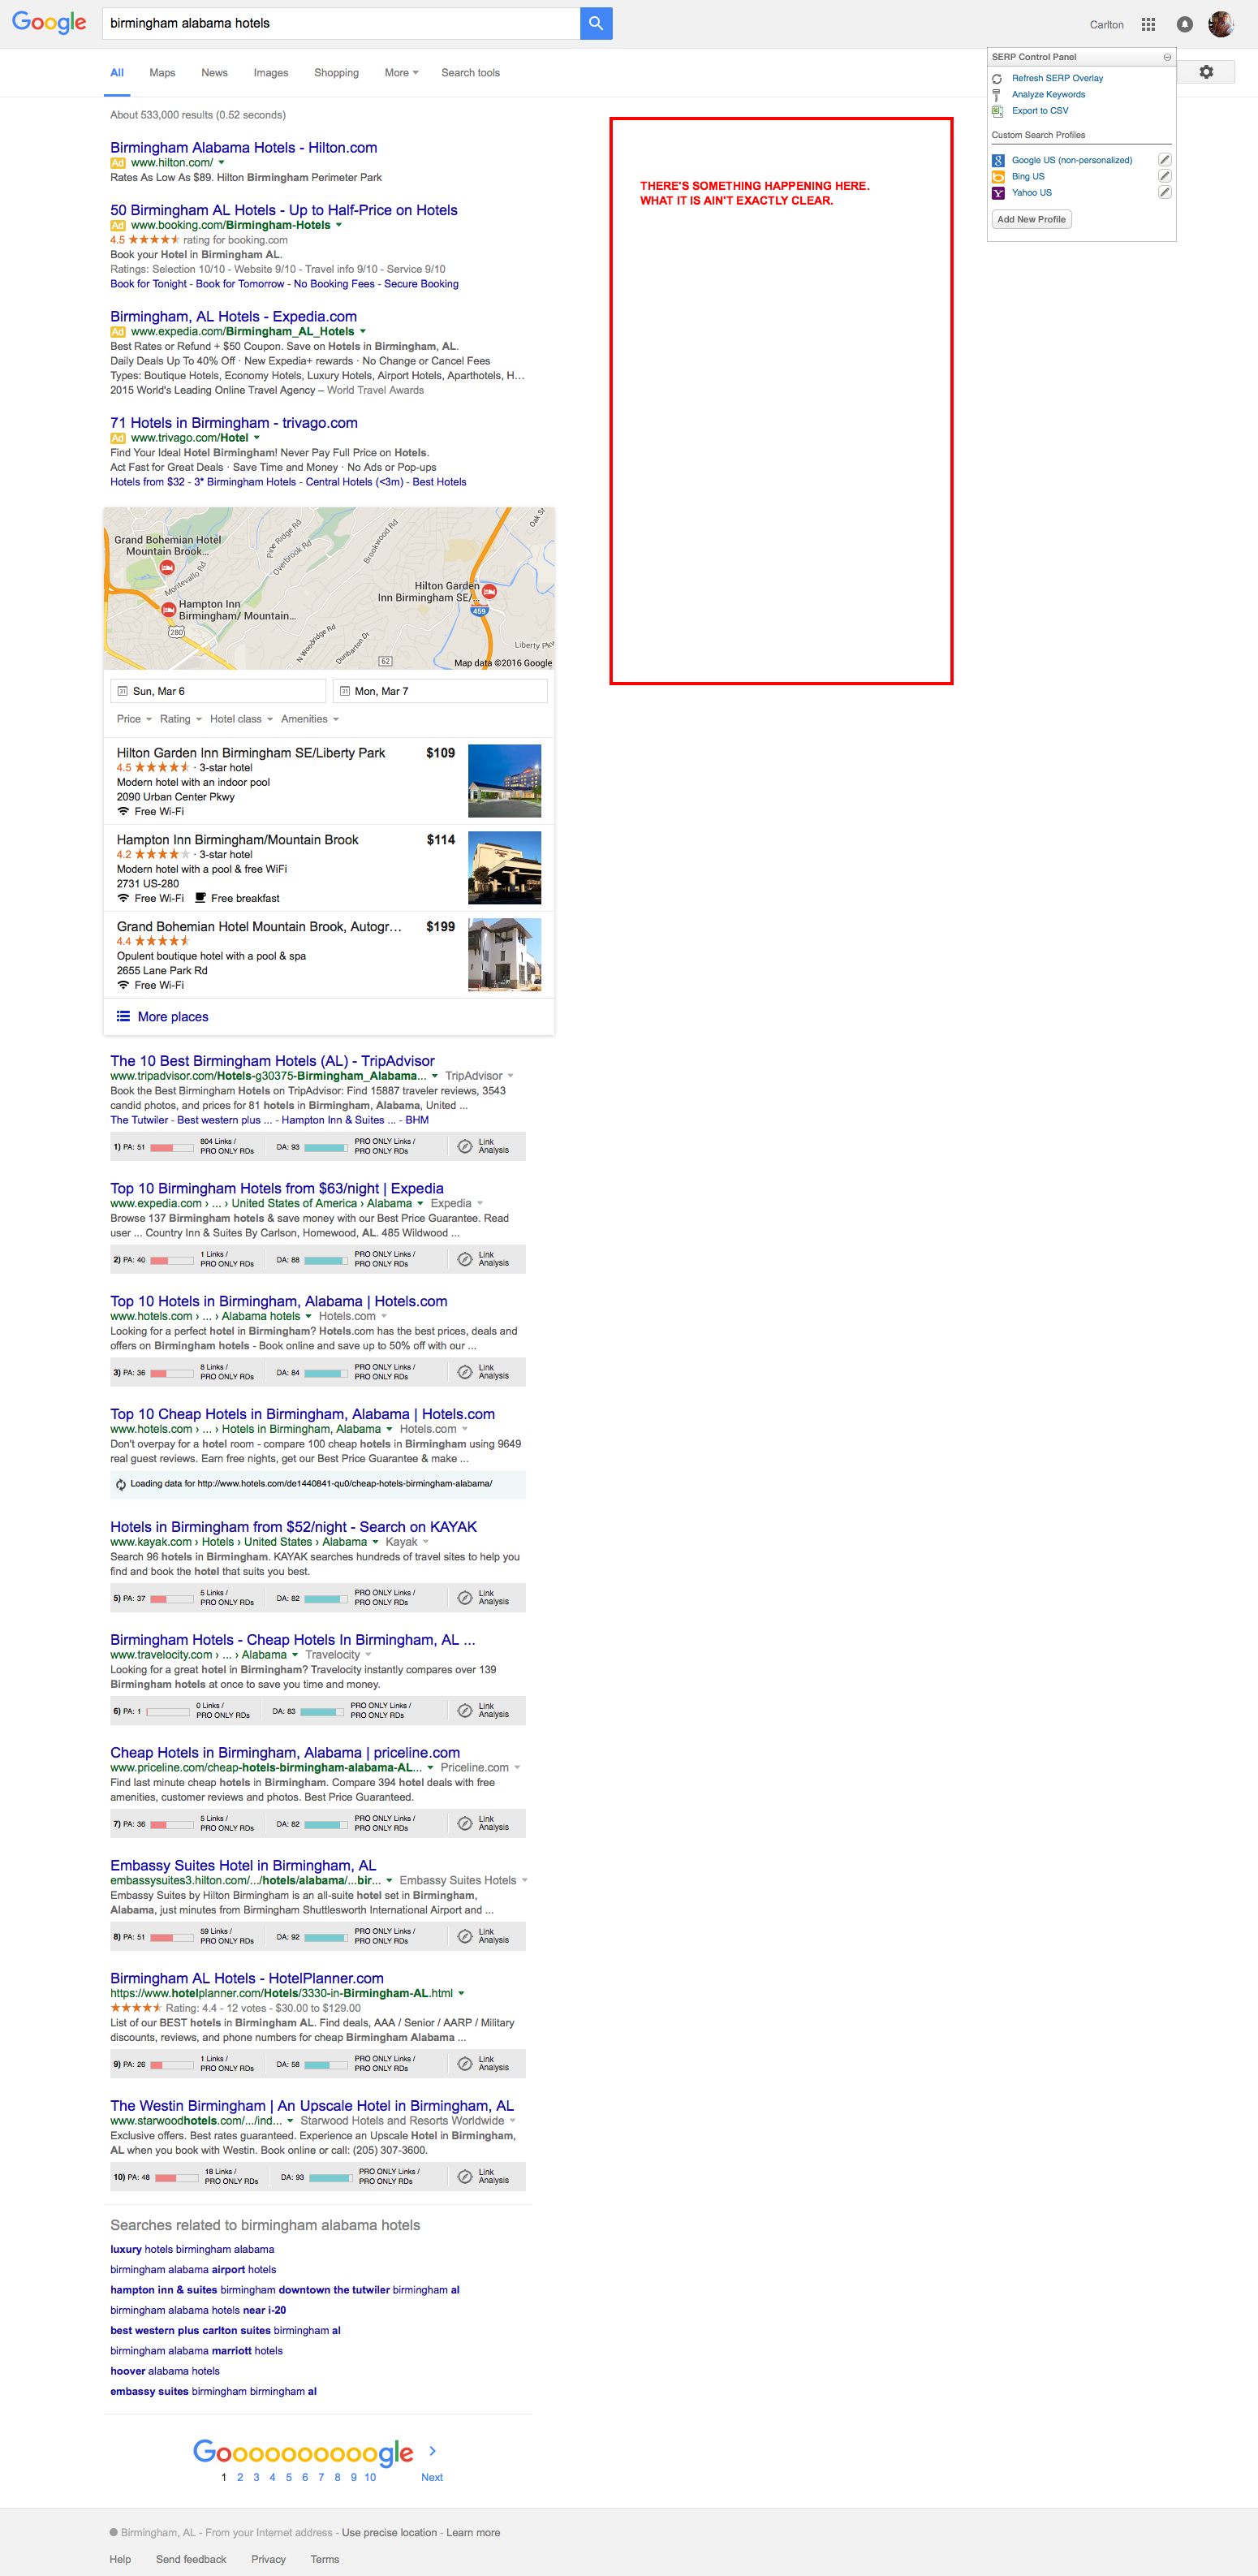 google serps change removed right sidebar ads on desktop